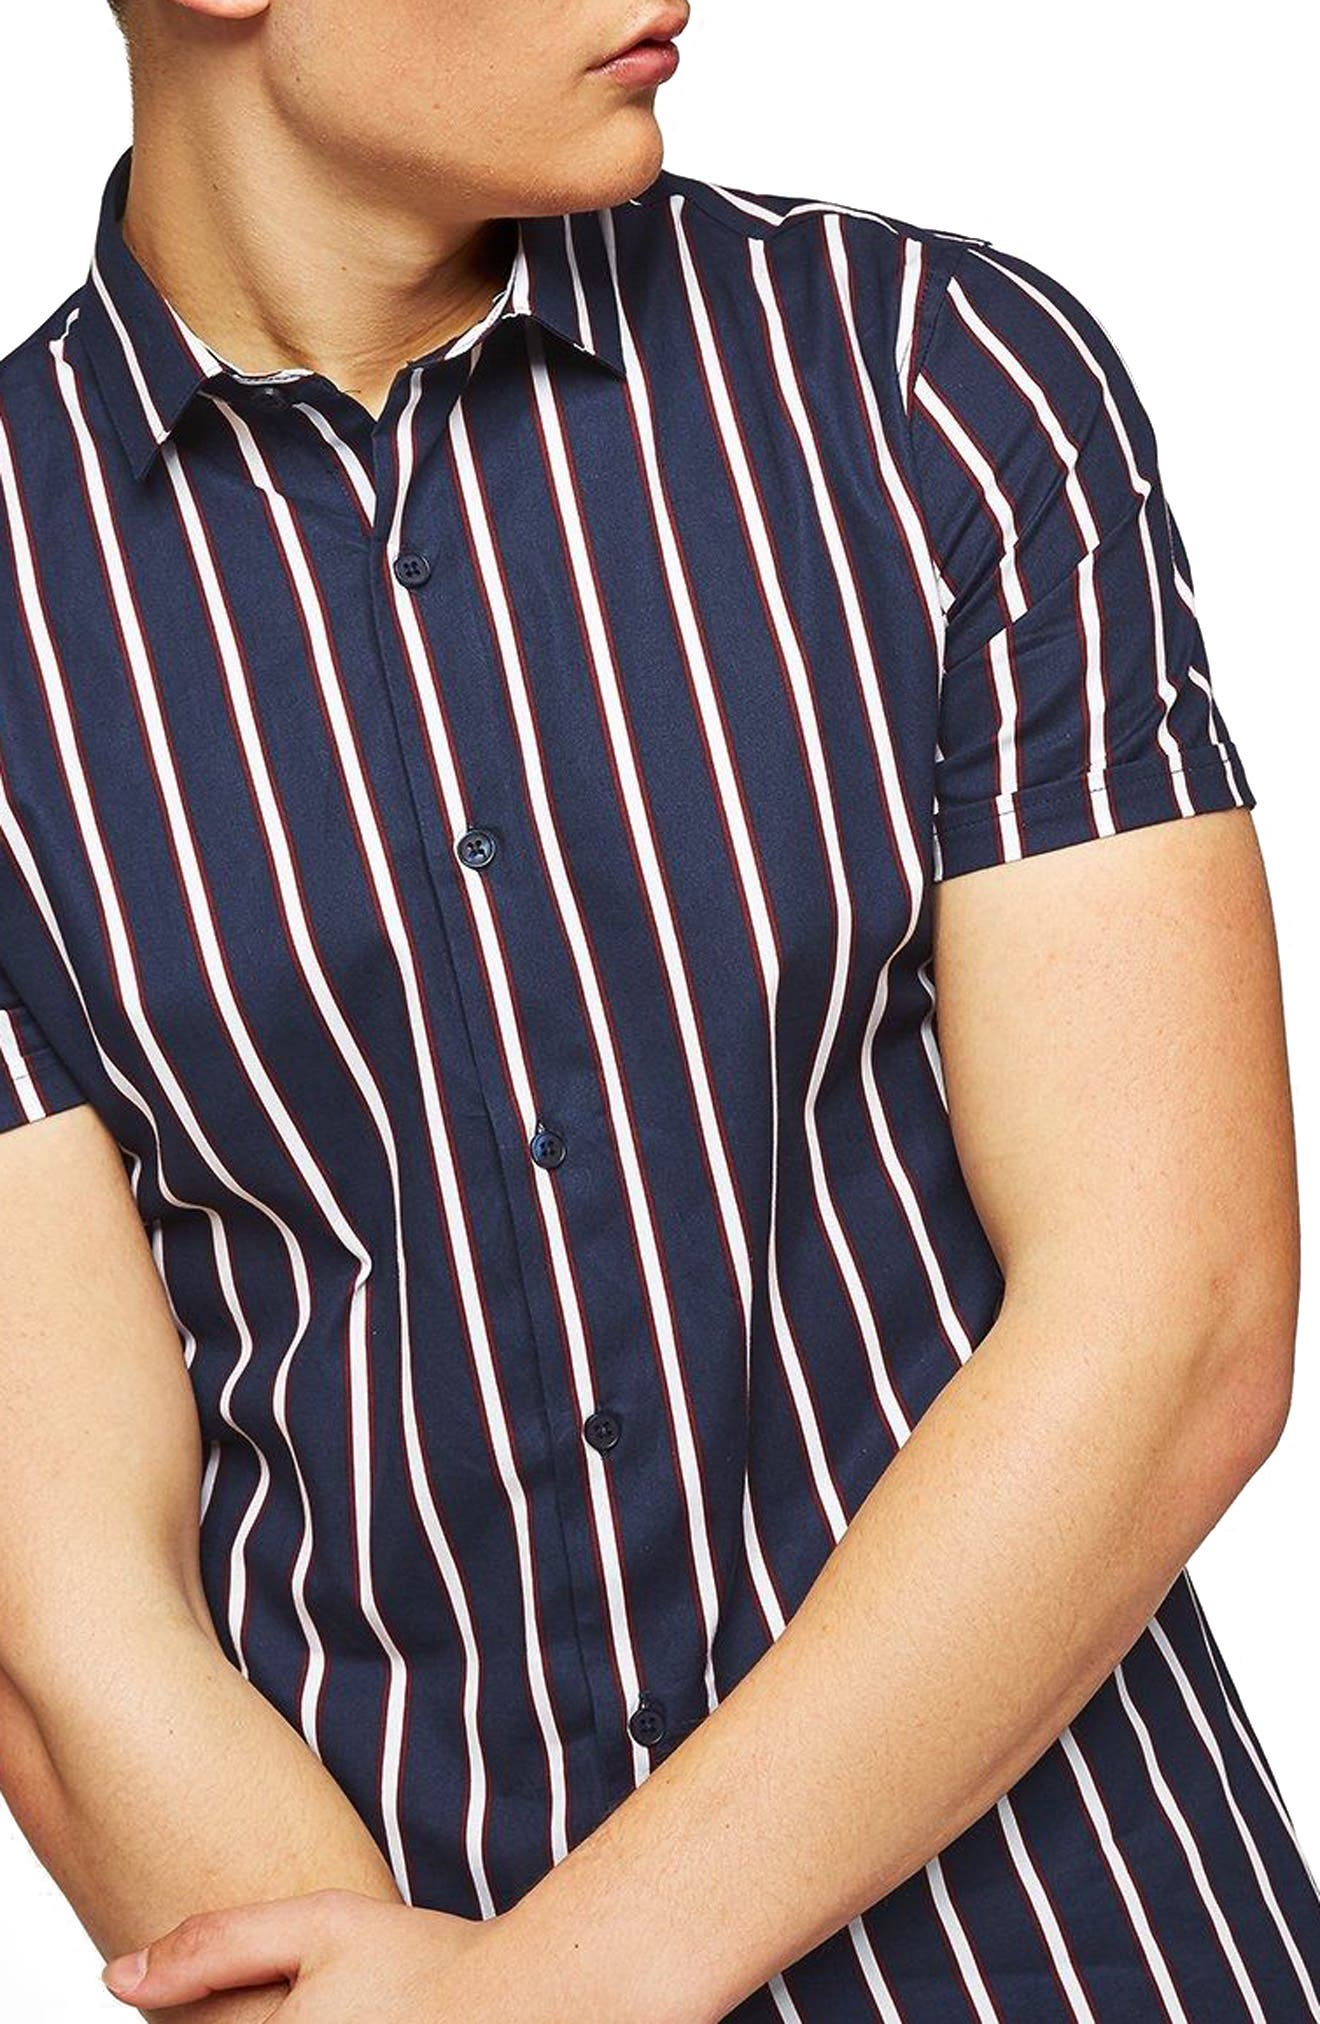 Muscle Fit Resort Stripe Shirt,                             Main thumbnail 1, color,                             411